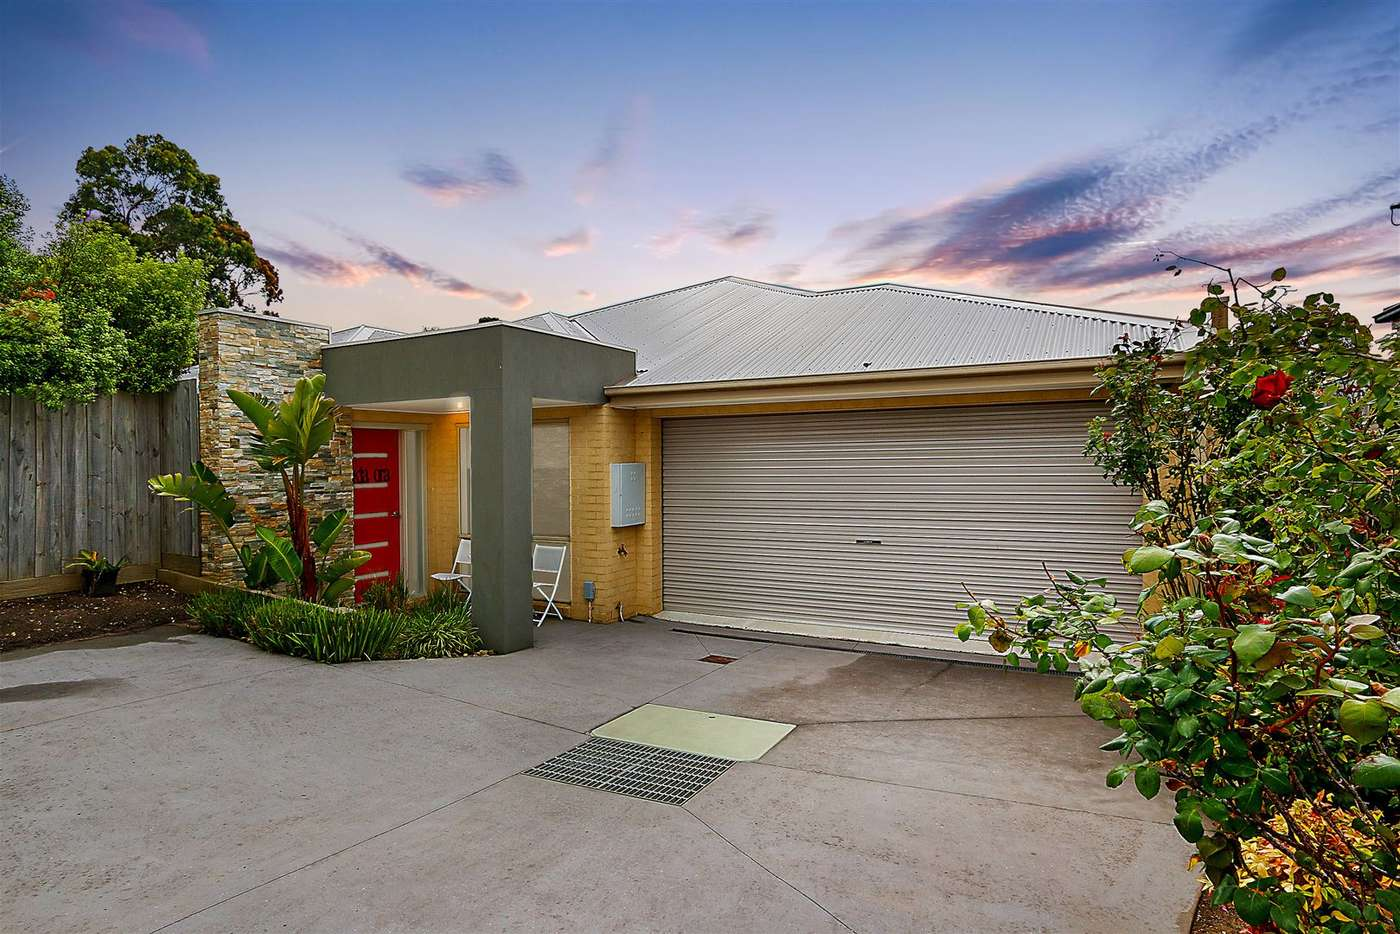 Main view of Homely house listing, 2/11 Olivia Way, Hastings VIC 3915